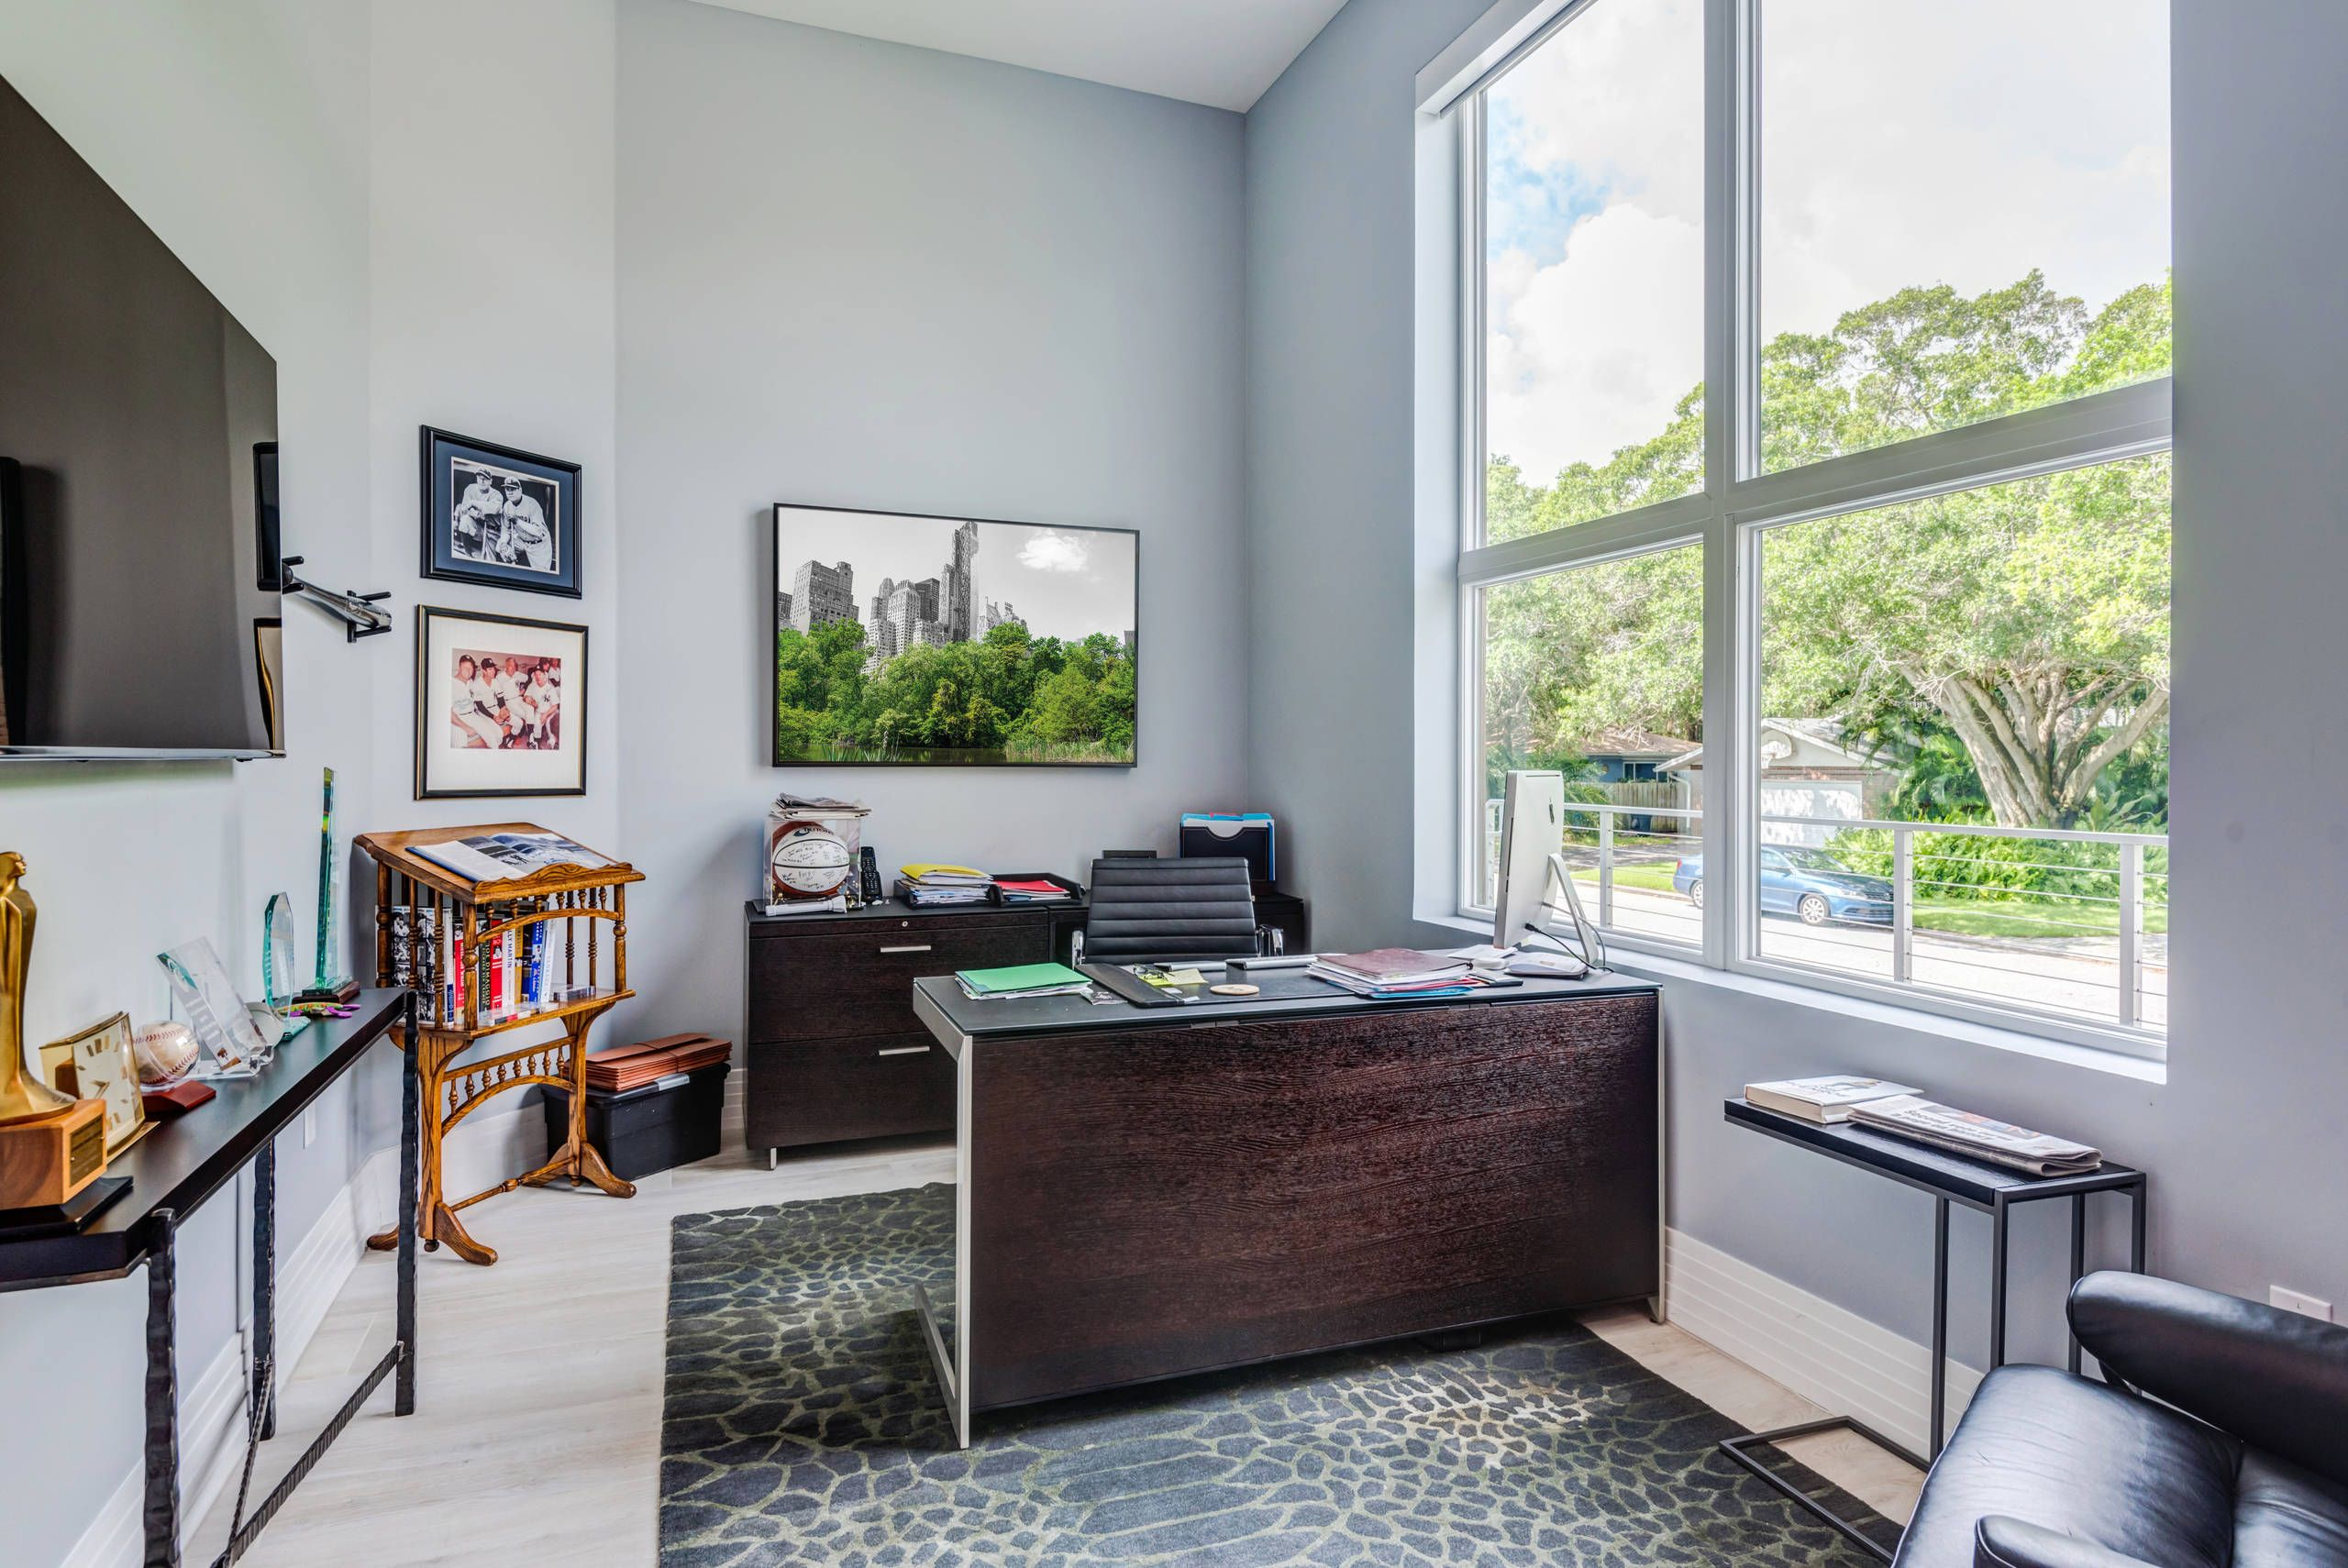 45 Stylish Home Office Design Ideas. #home #homedesign #homedesignideas  #homedecorideas #